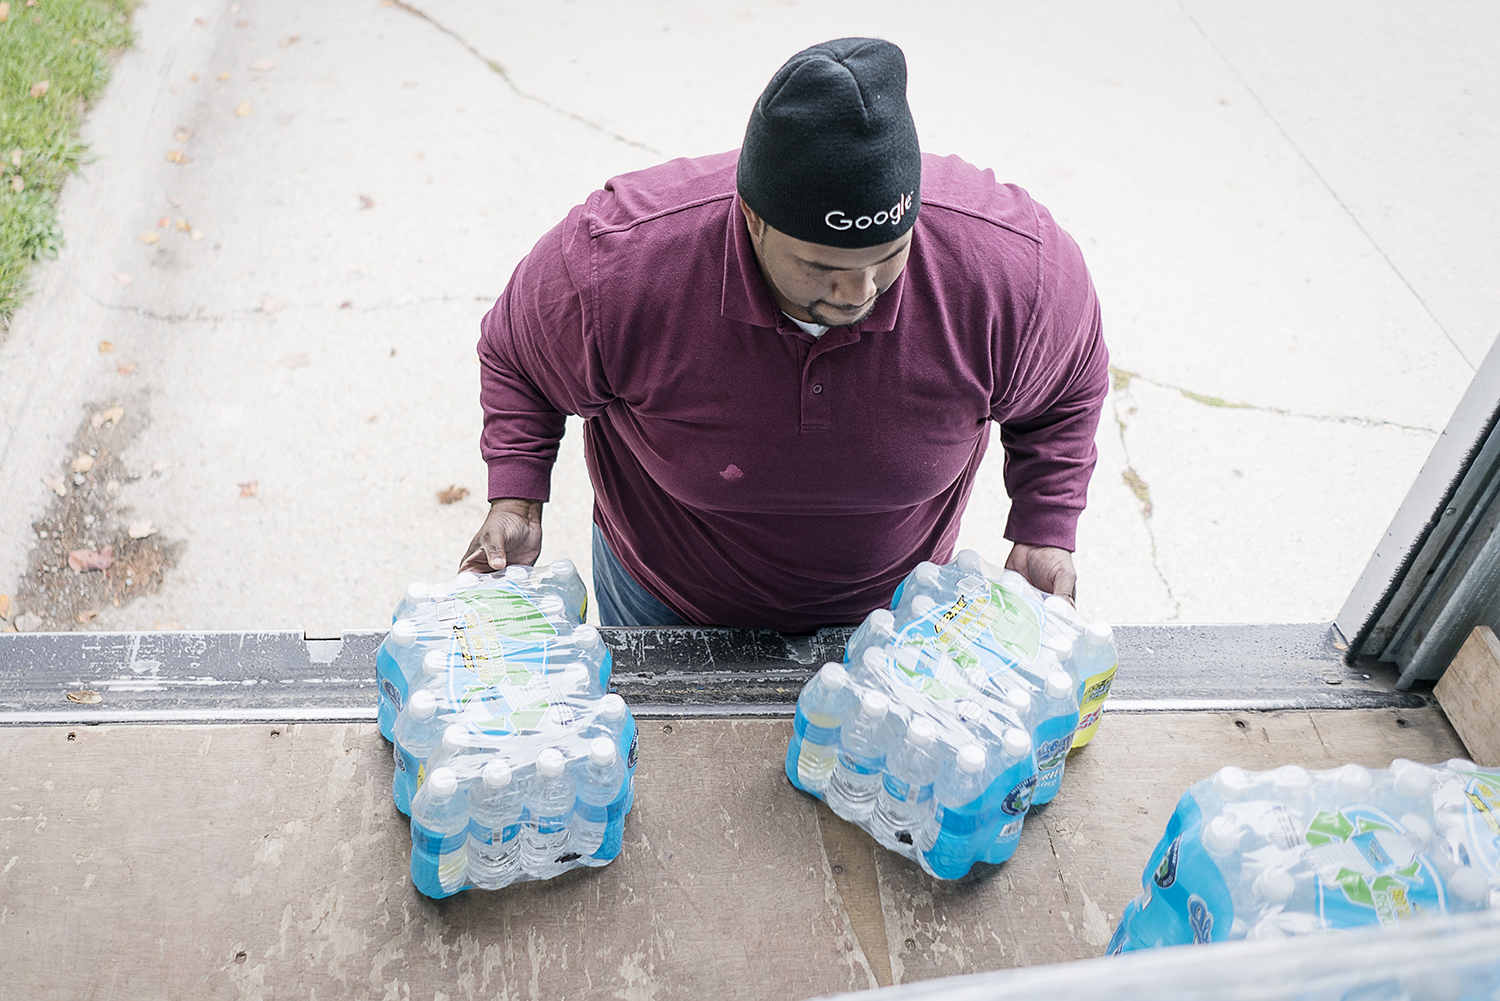 Flint, MI - Wednesday, October 25, 2017: William Harris, 31, from Flint, slides two cases of water off the back of the delivery truck he and his teammates use to provide service to residents of the 4th Ward. Harris will climb up and down repeatedly throughout the day to position water for easy delivery to the homes along the route.